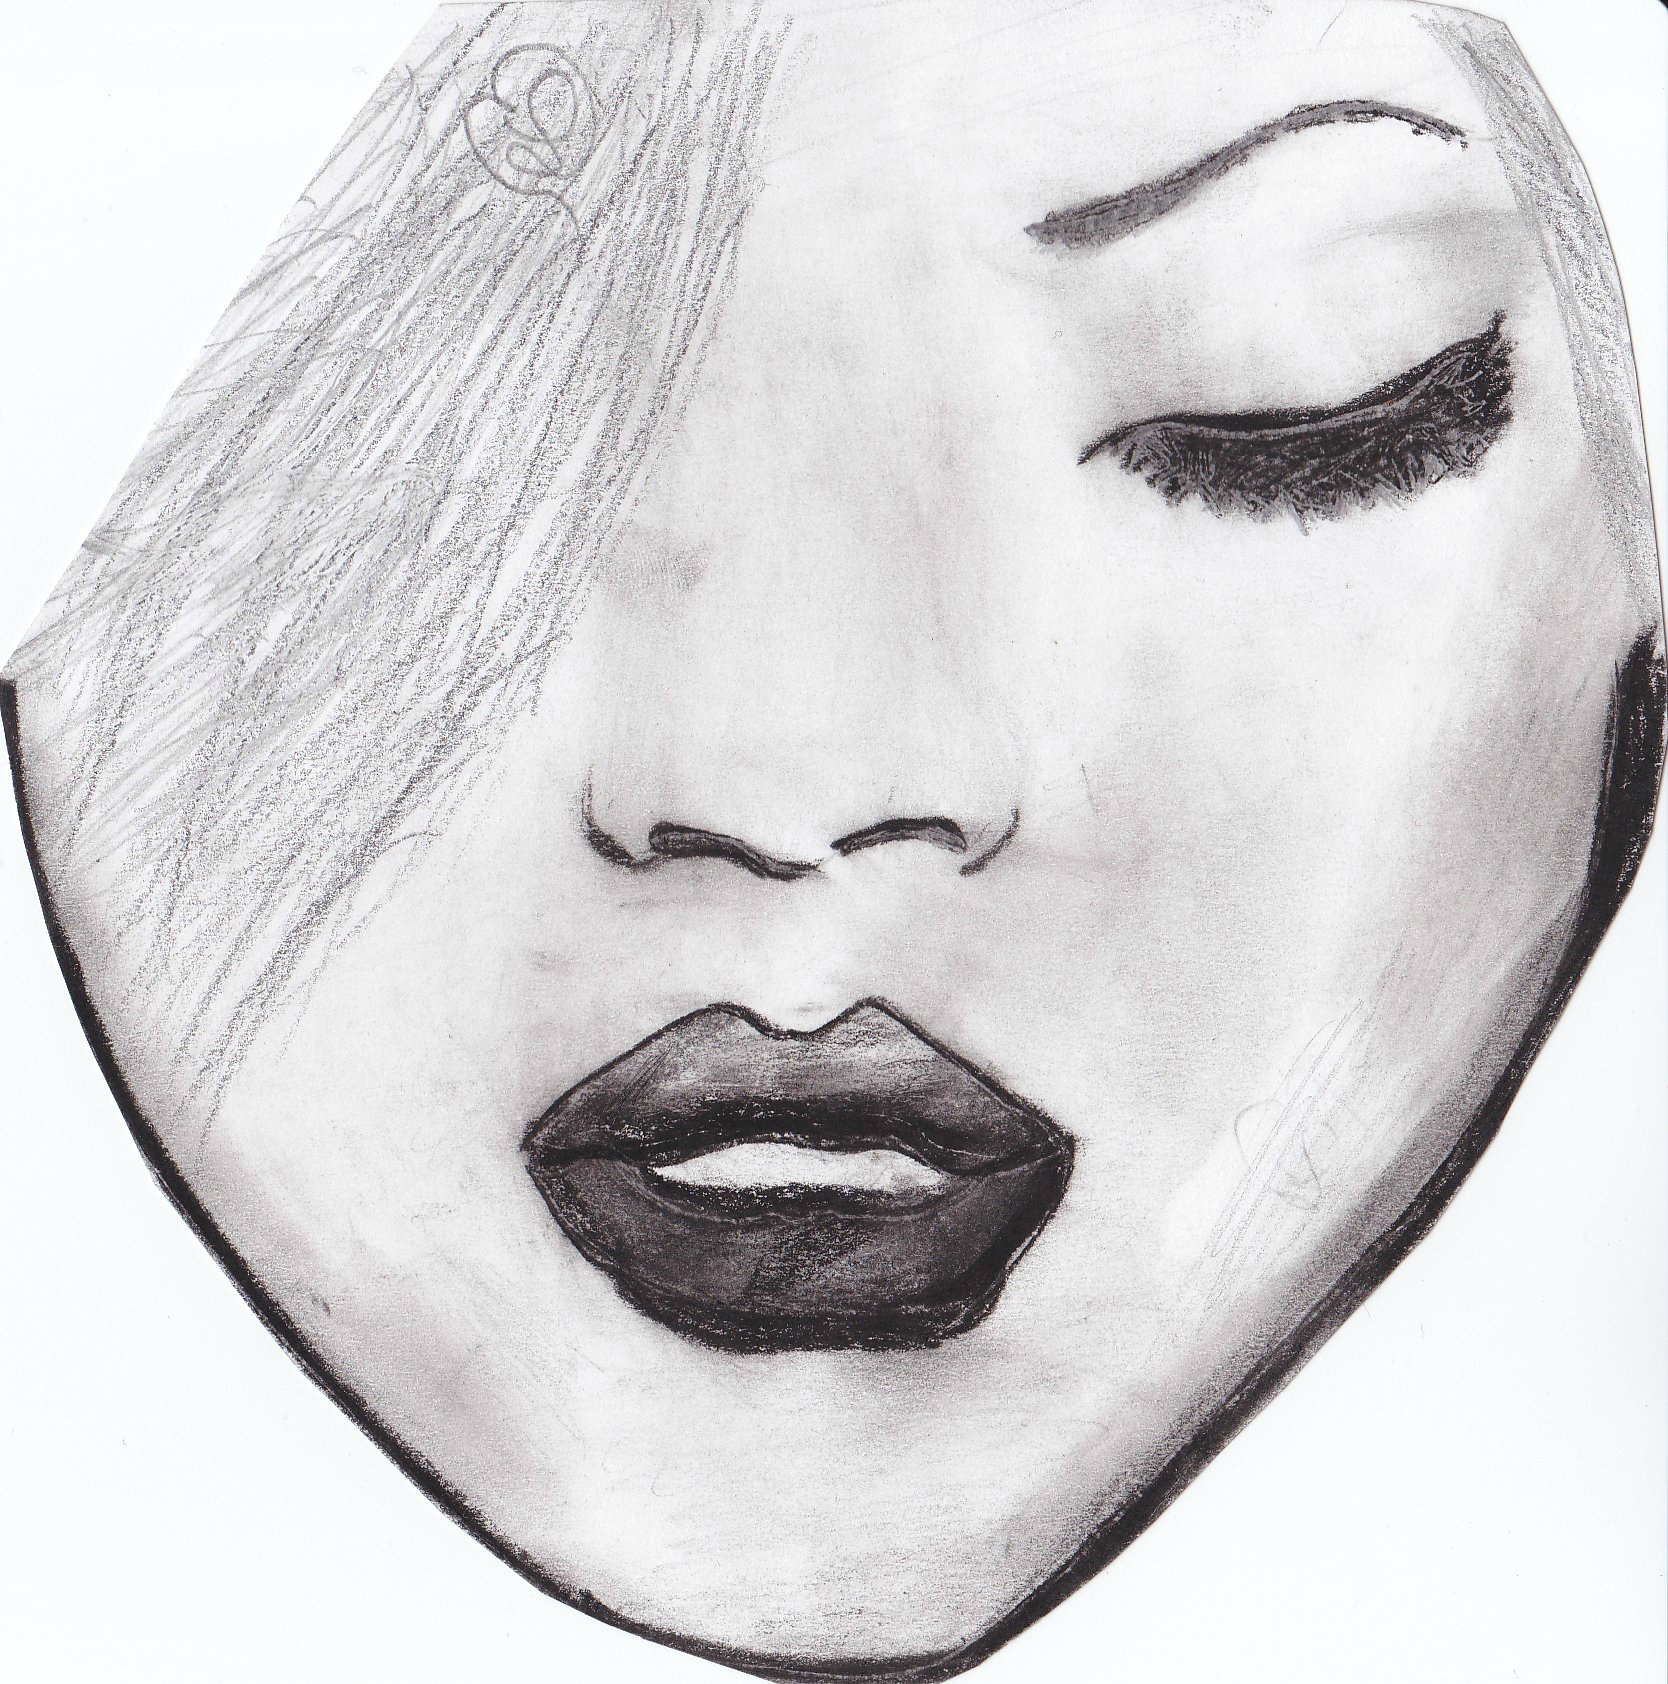 Photo Facile A Dessiner Portrait Rihanna Un Amour De Dessin